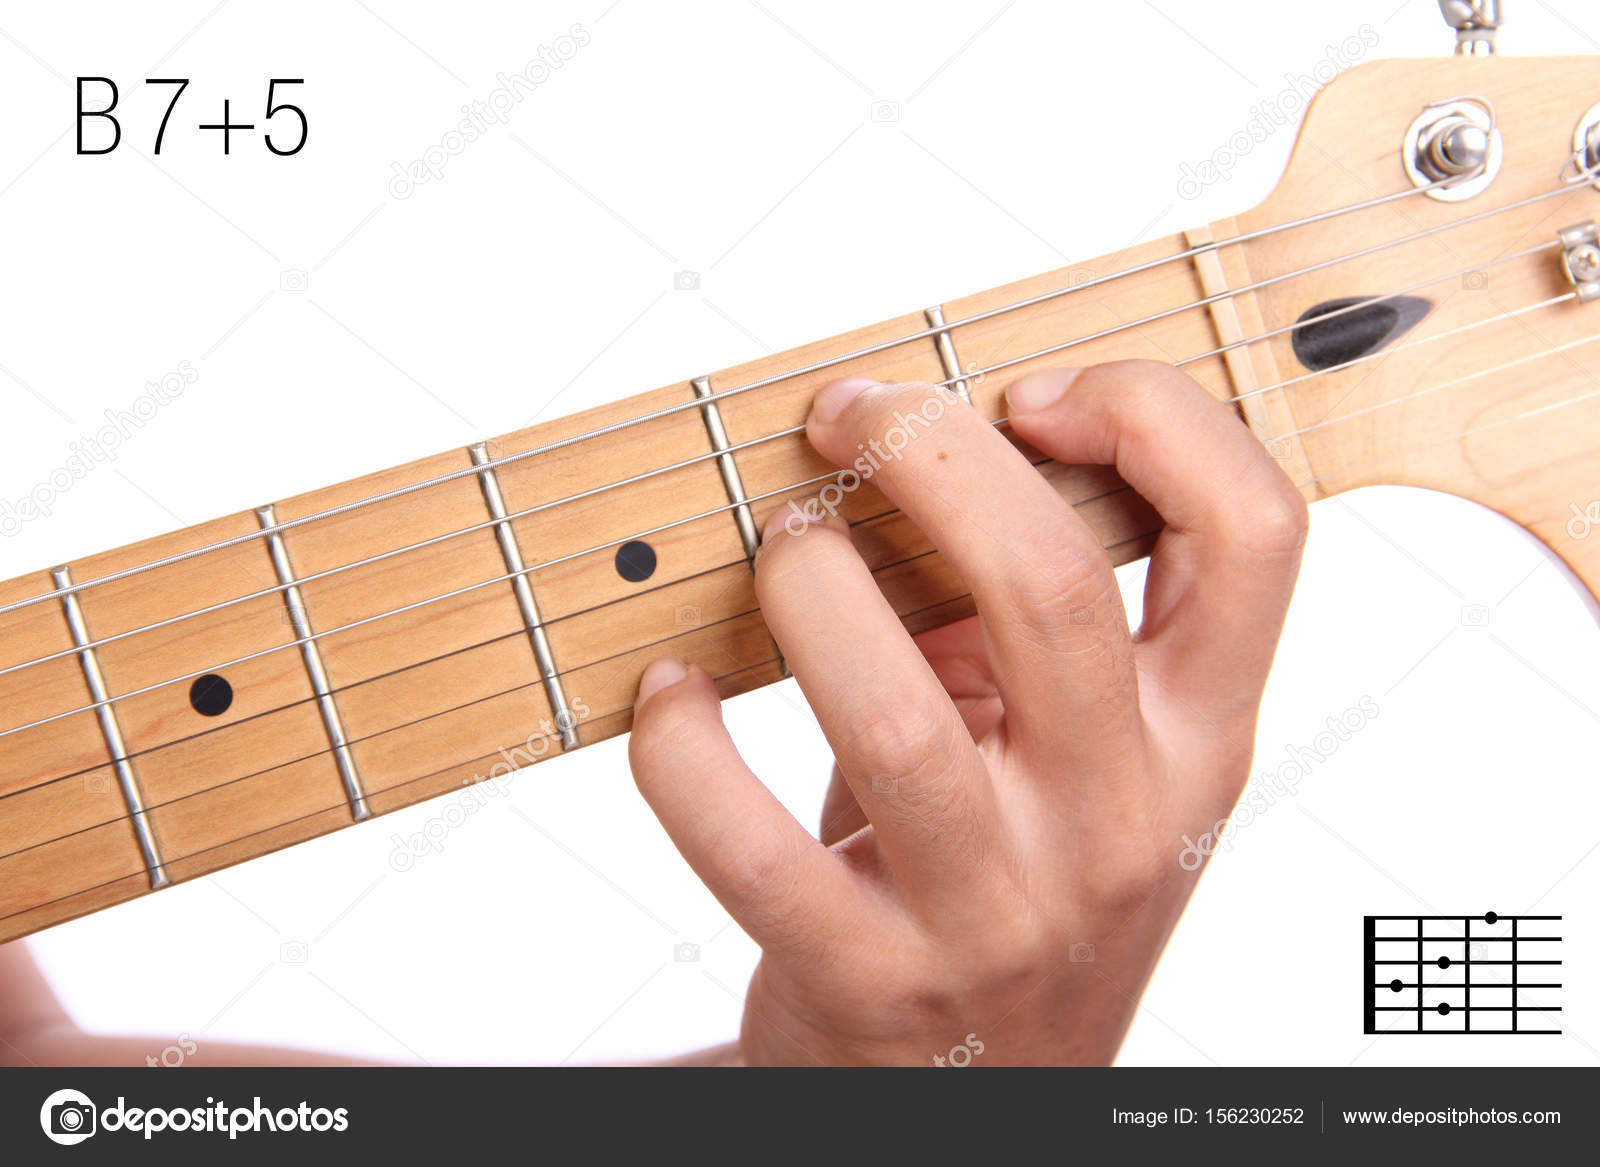 B7 Guitar Chord B75 Guitar Chord Tutorial Stock Photo Pepscostudio 156230252